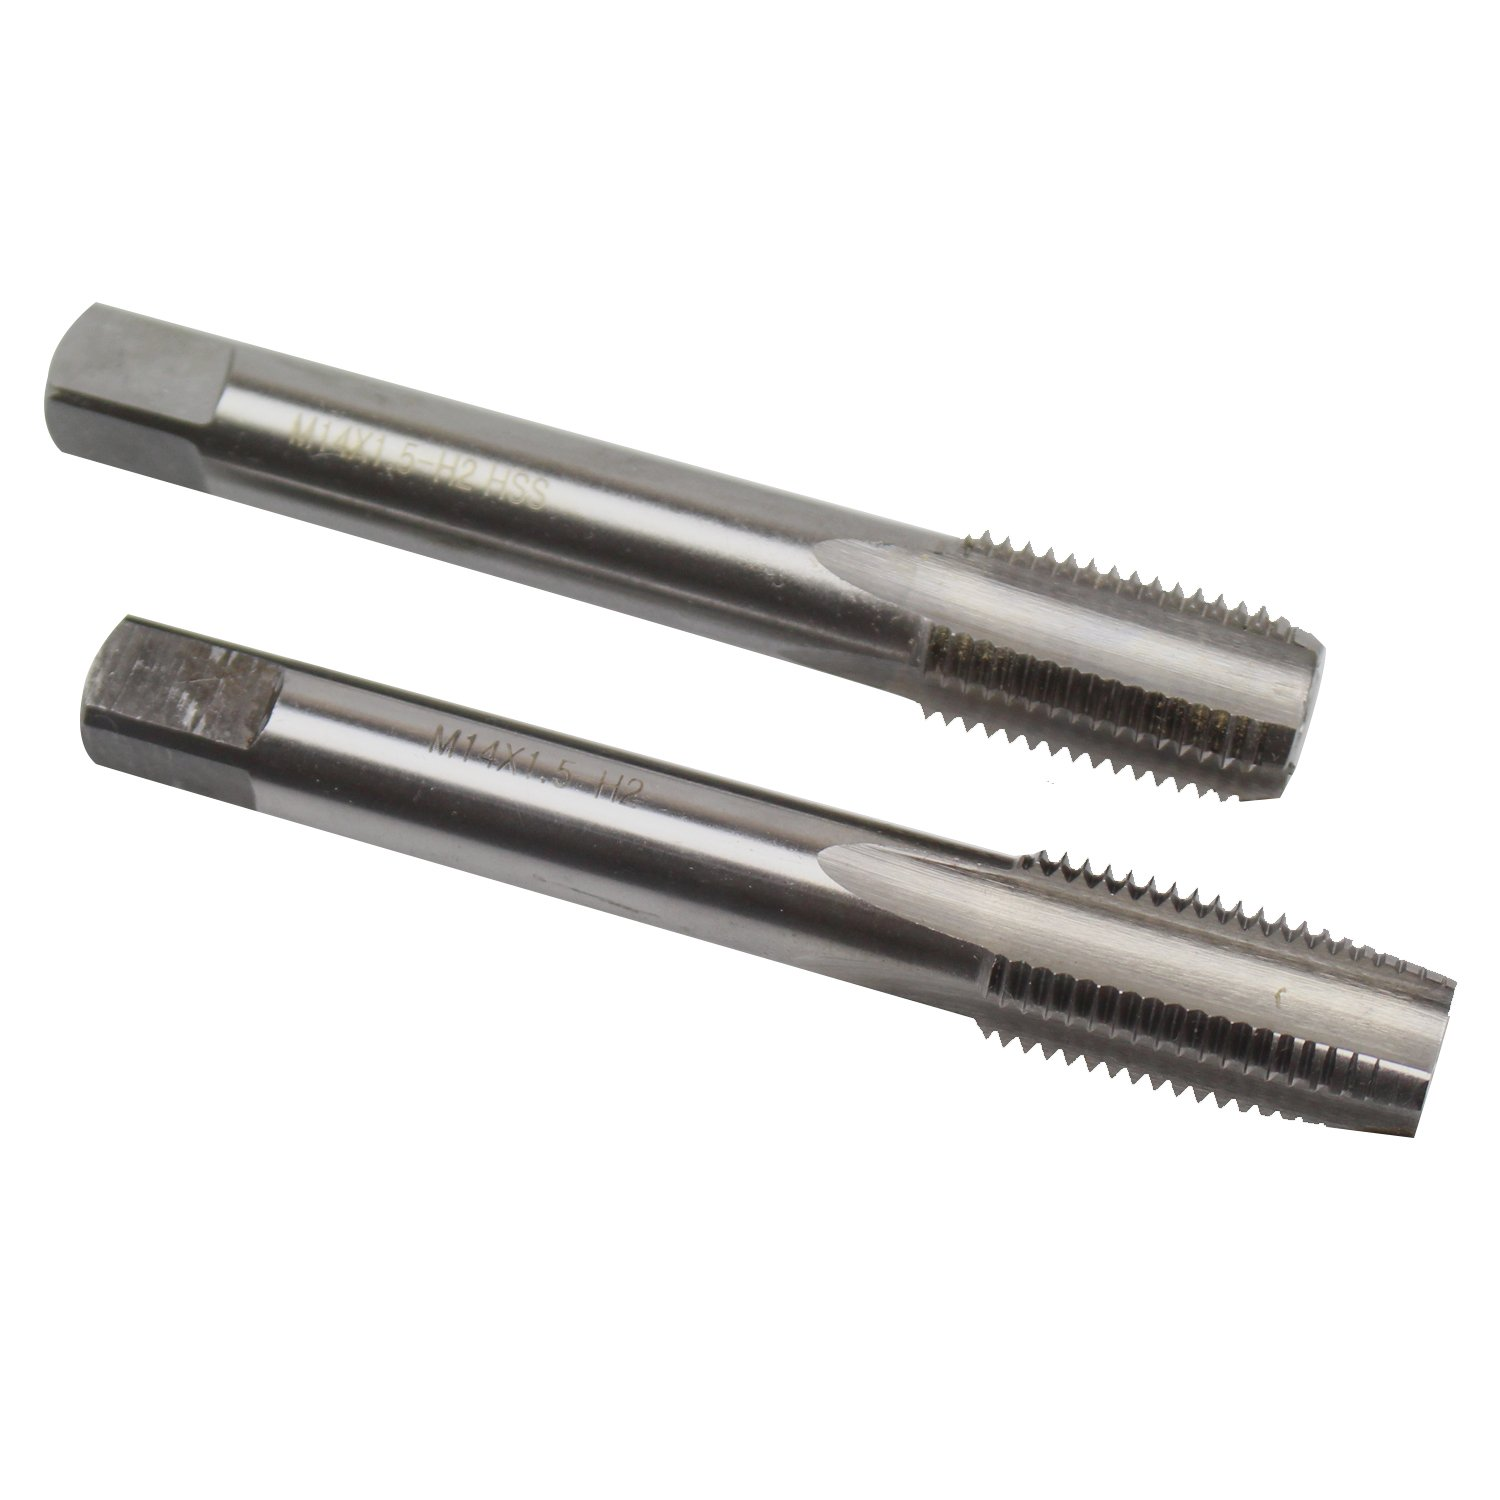 14mm X 1.5 Taper and Plug Tap M14 X 1.5mm Pitch by KMIAN TOOLS